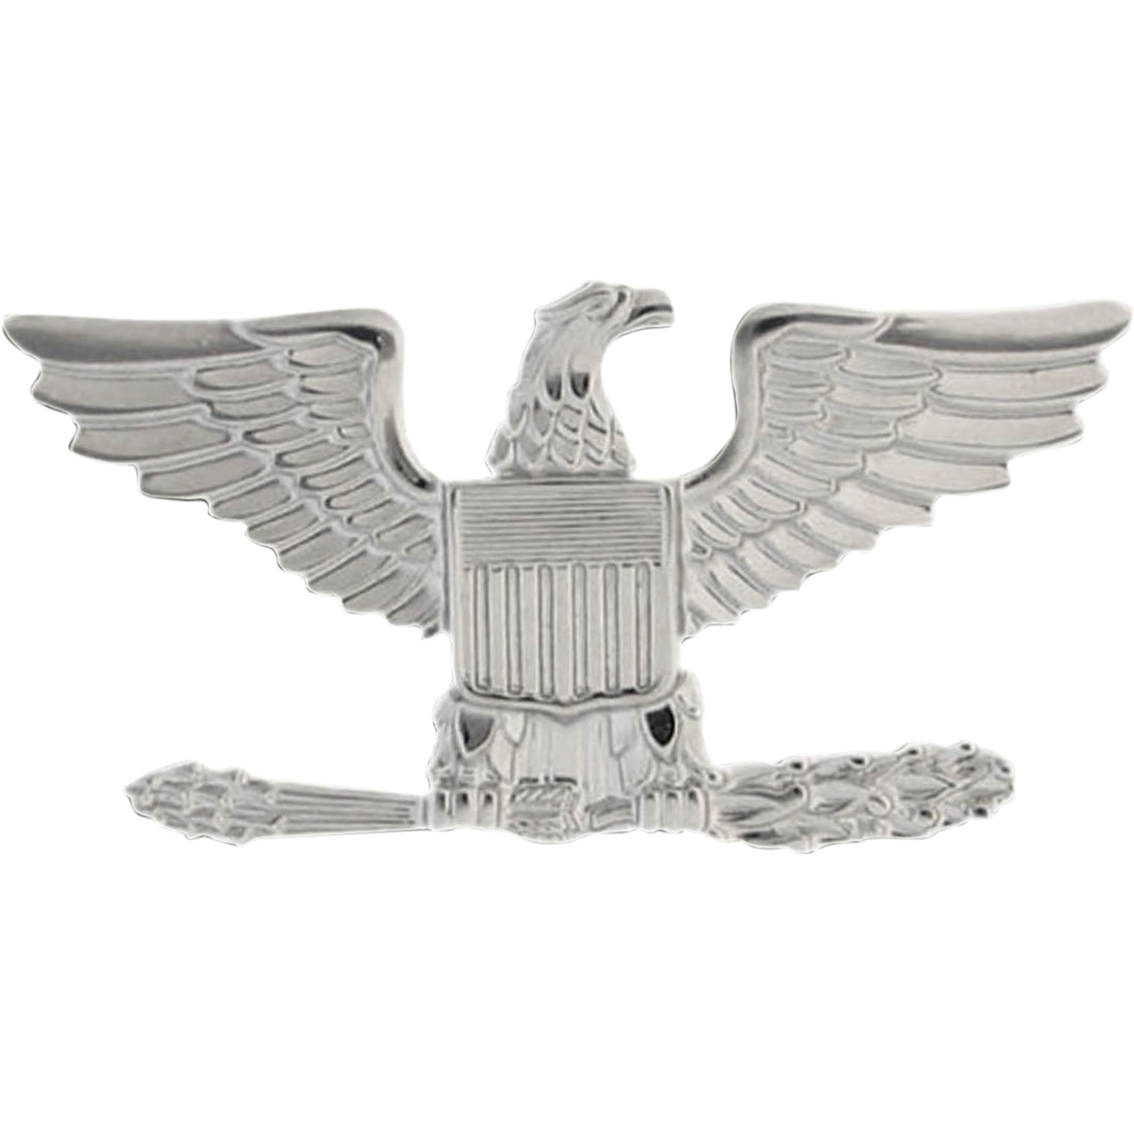 Officer Rank Colonel Regular Size Pin On O 6 Army Uniforms